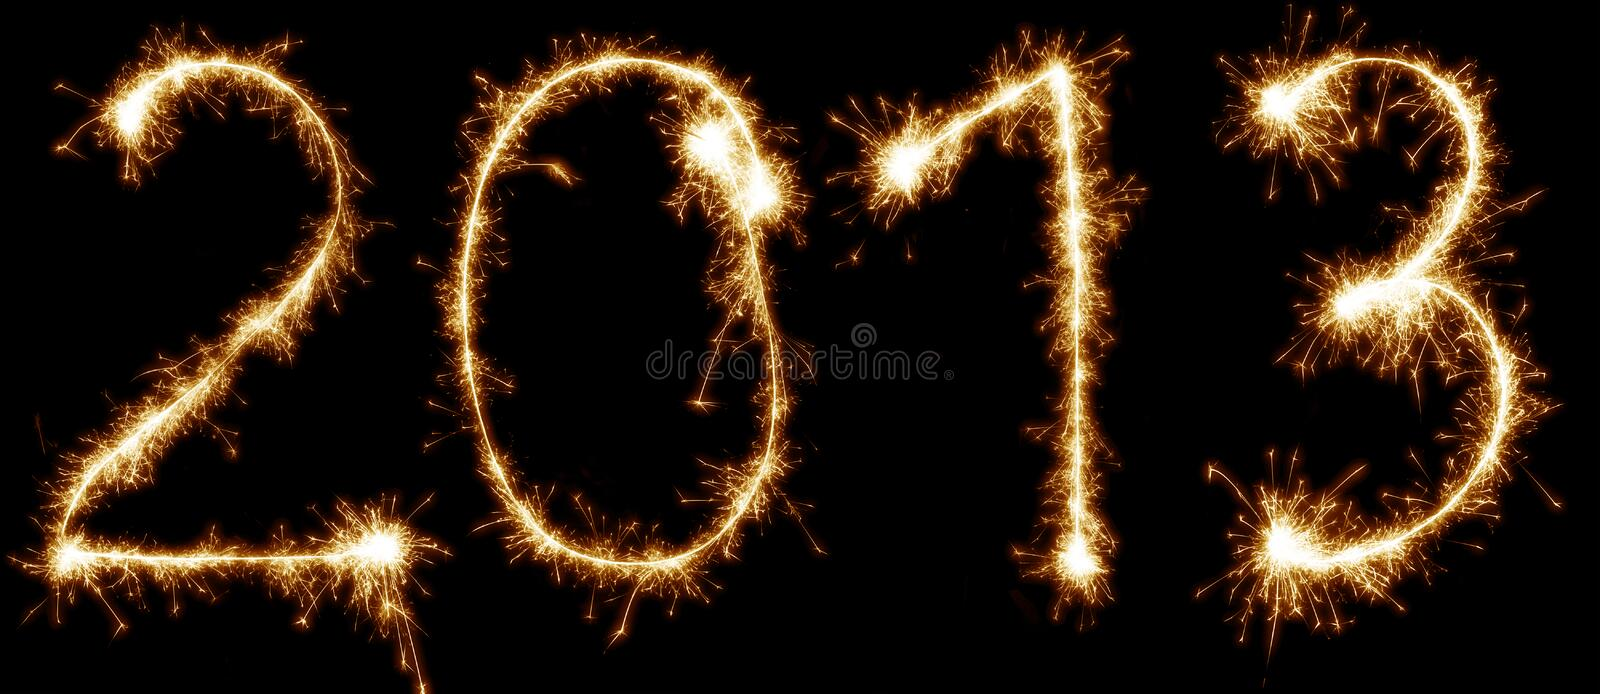 2013 Written With Sparkles Stock Photography